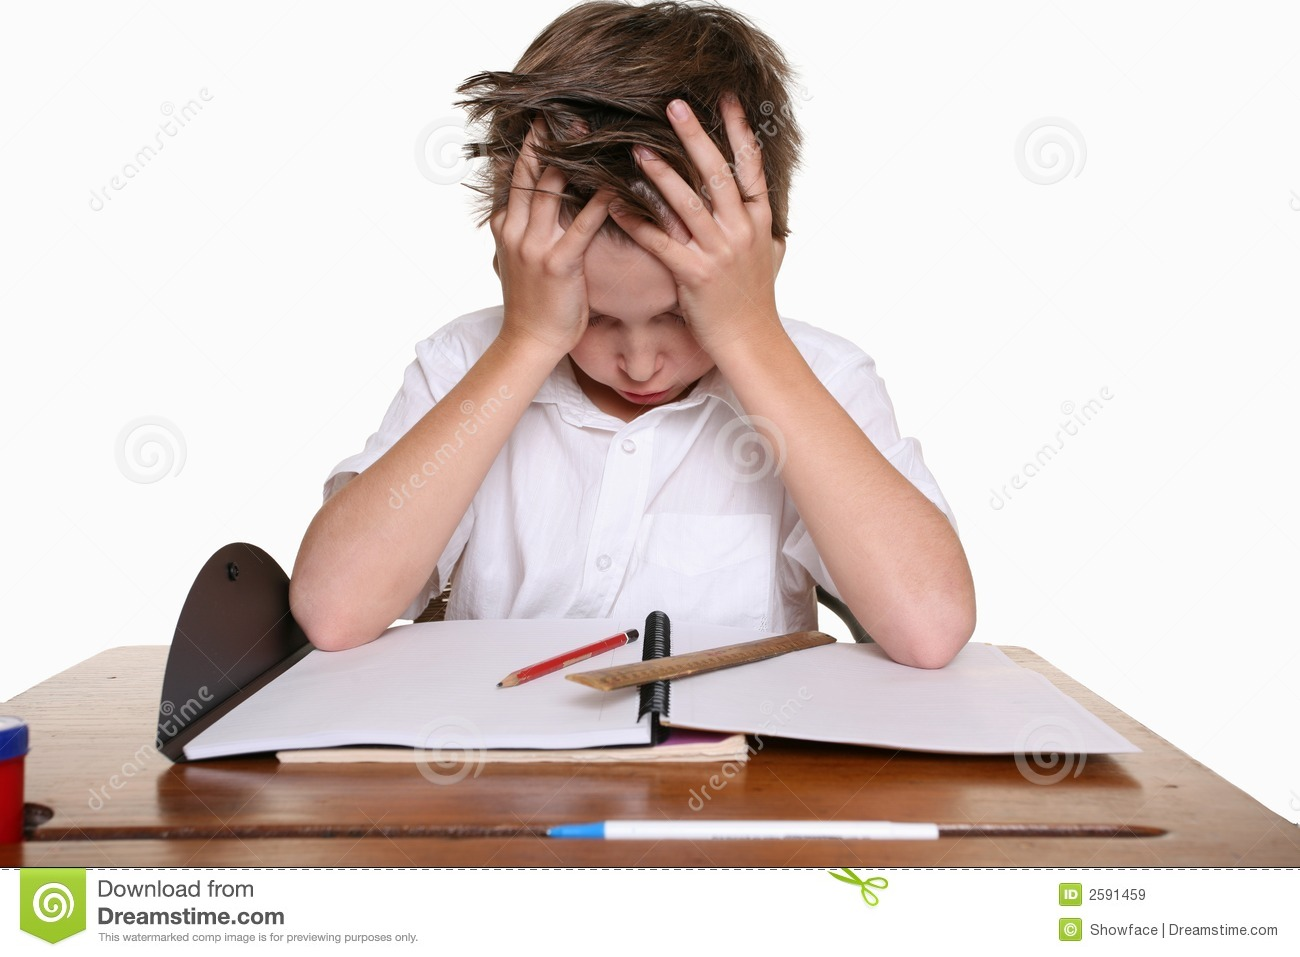 Child with learning difficulty